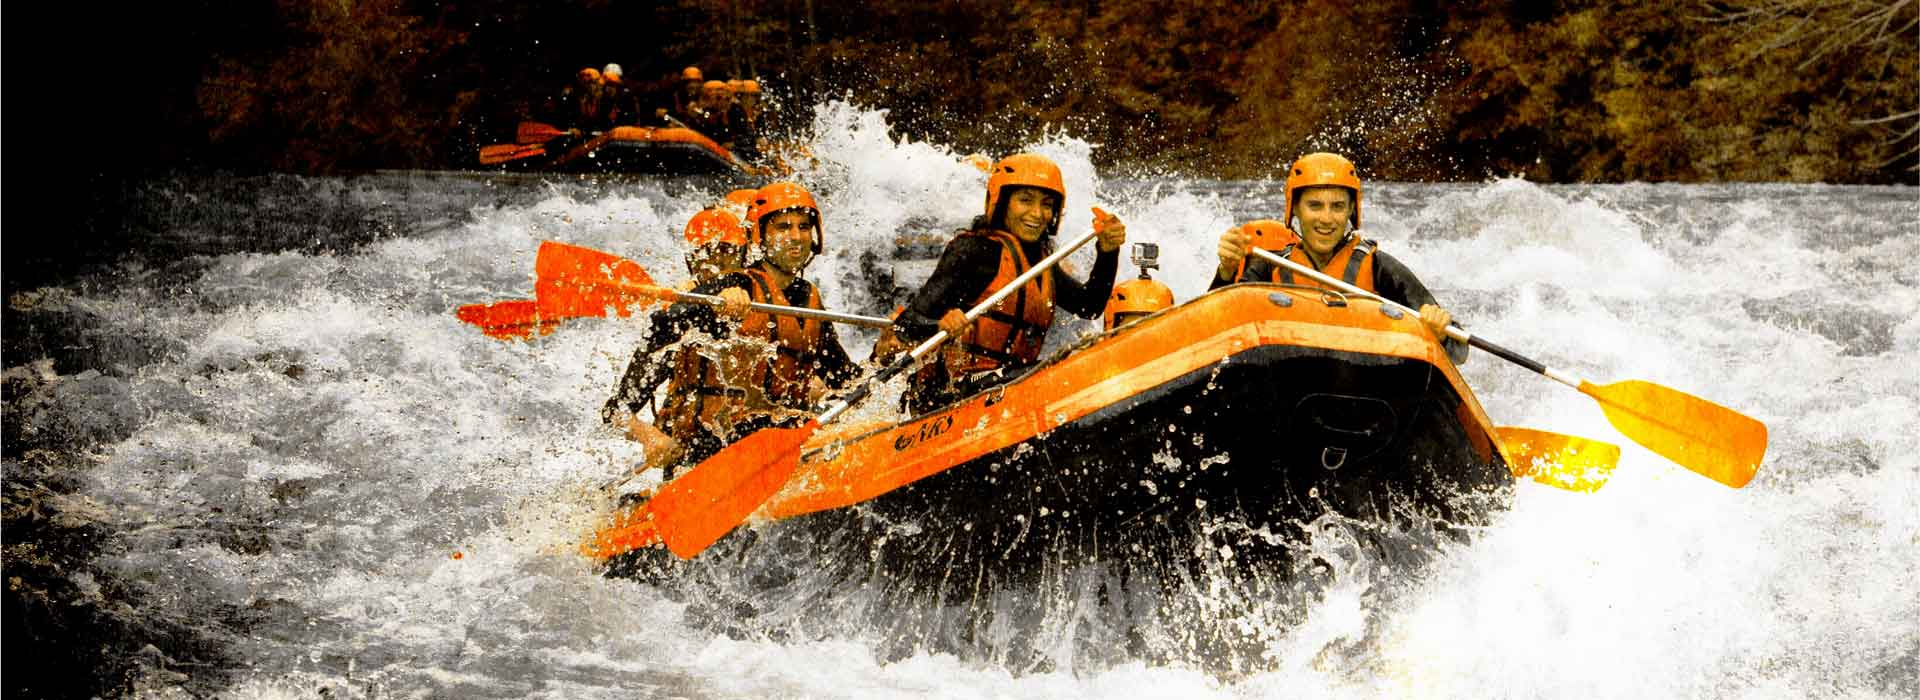 Full day rafting in Savoie, white water base Bourg-Saint-Maurice